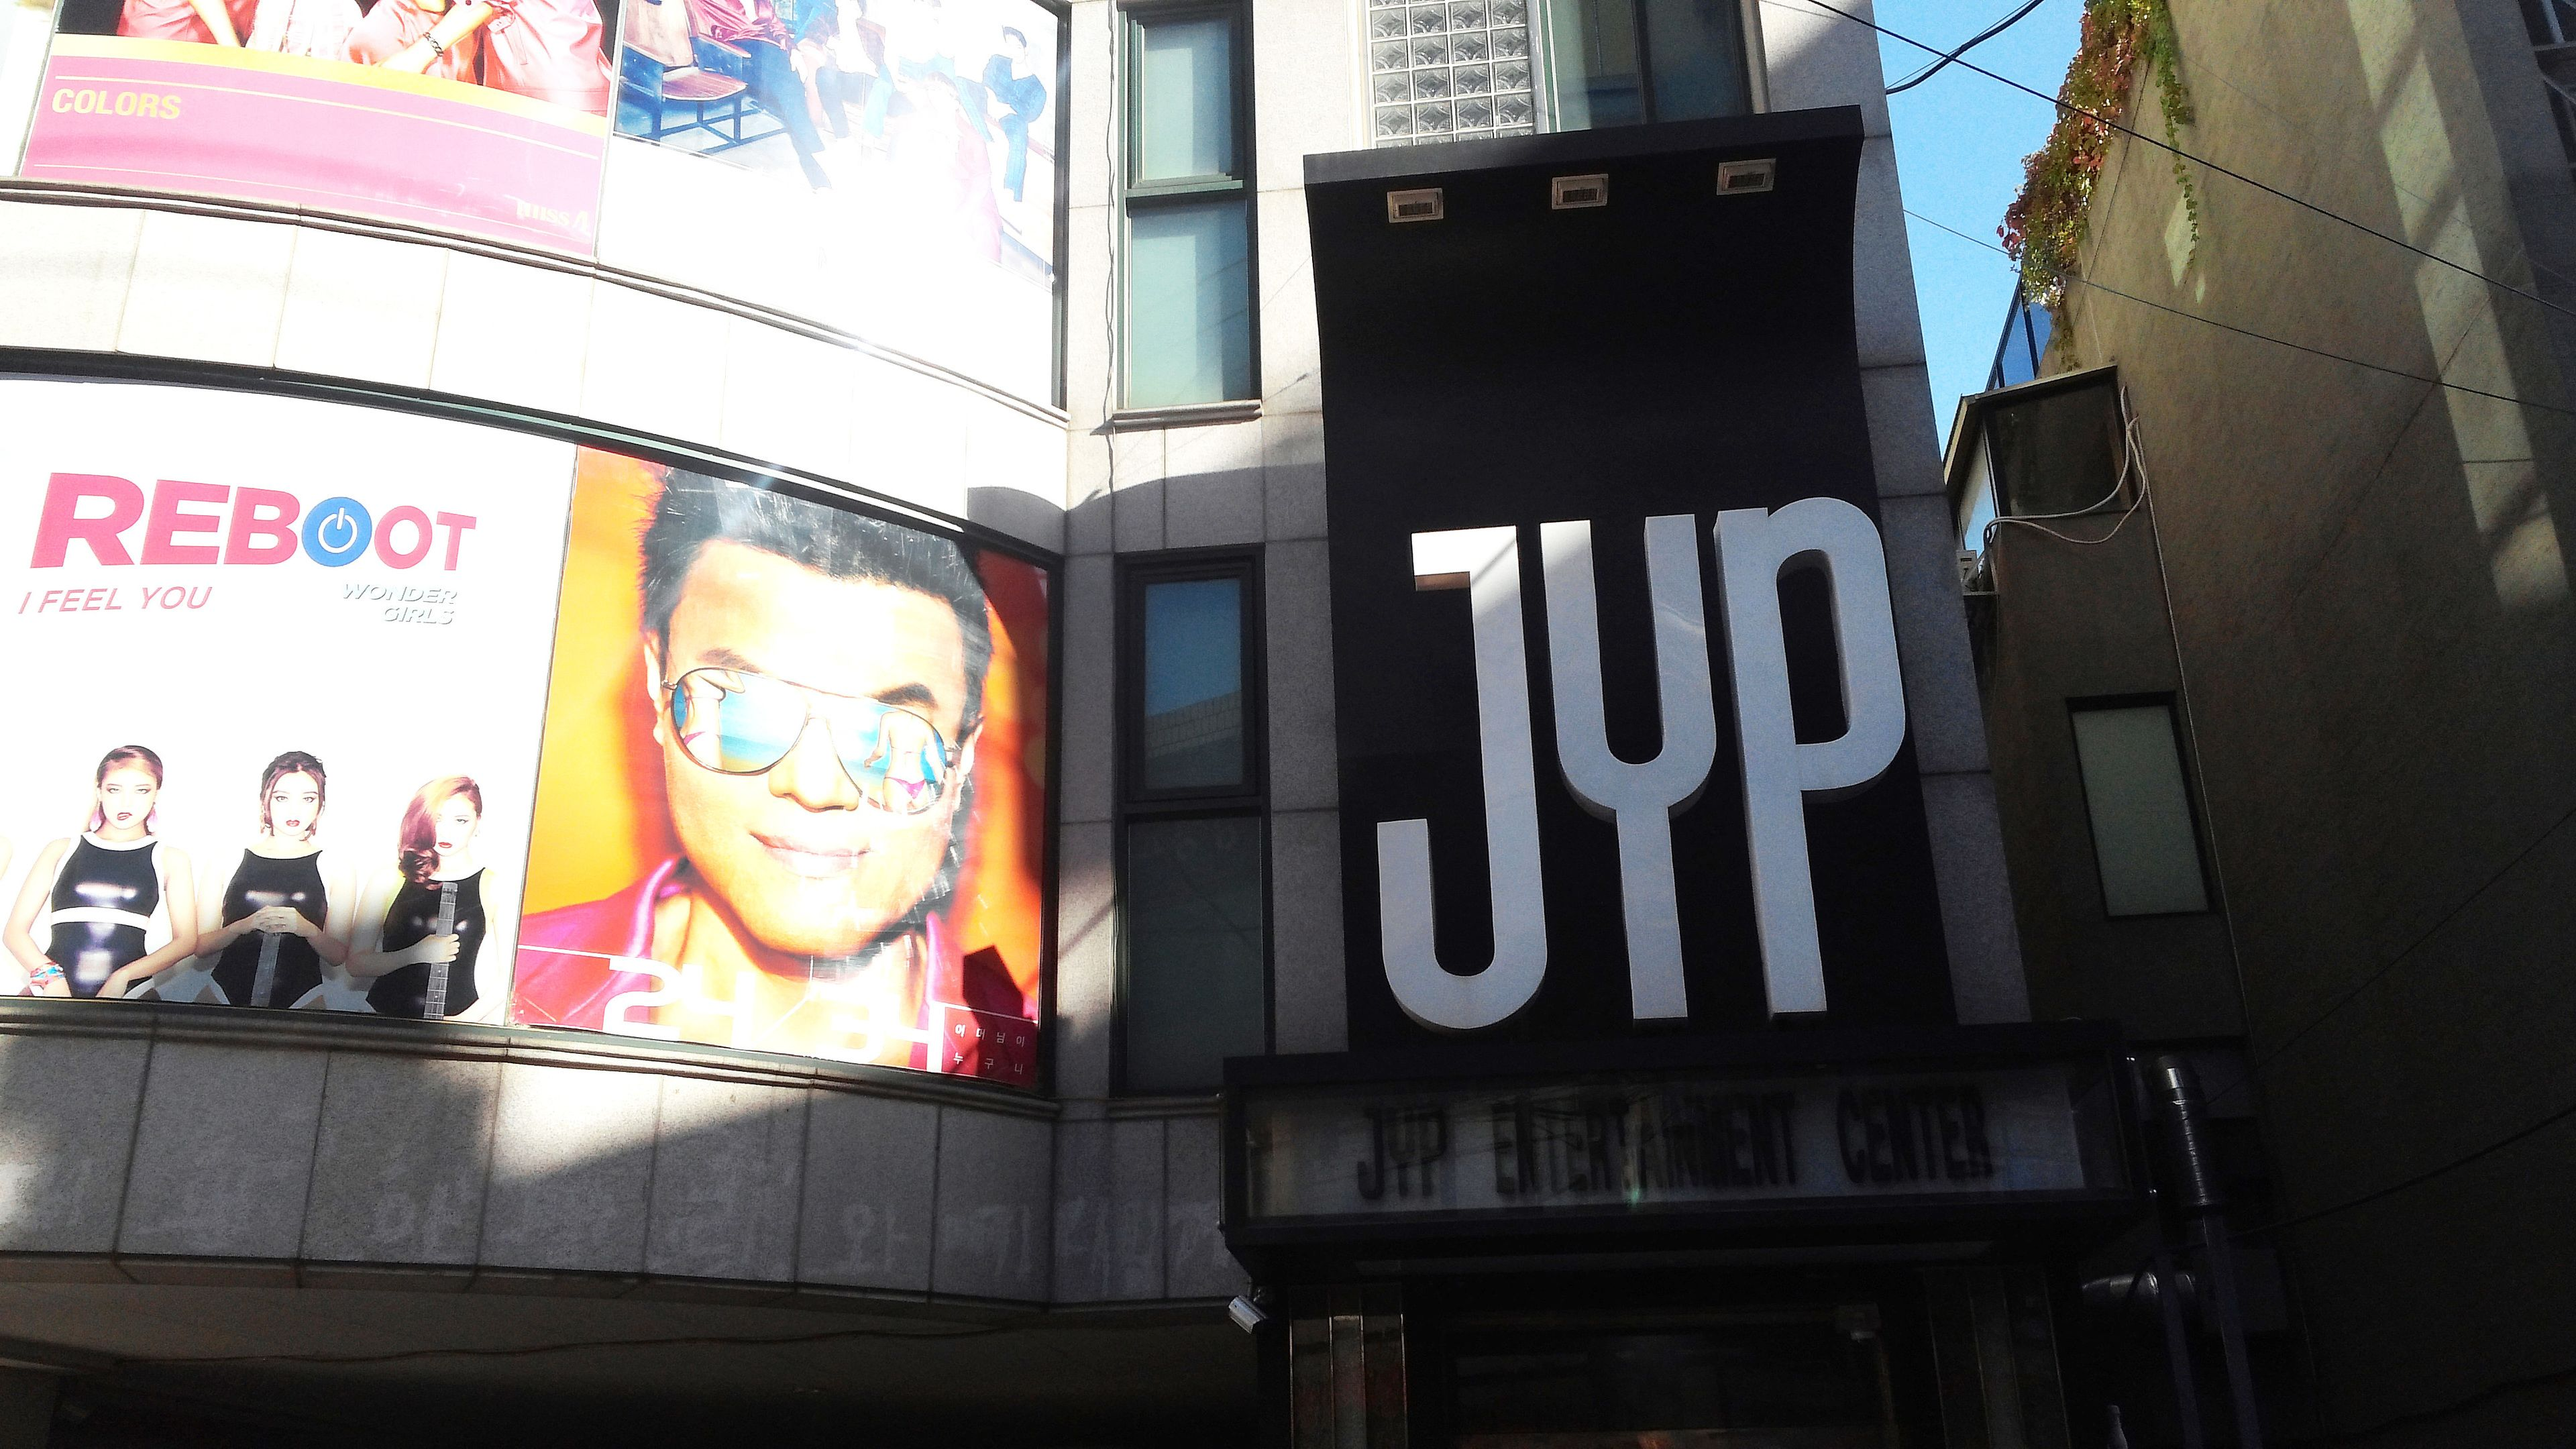 Billboards and entrance to the JYP Entertainment Center in Seoul